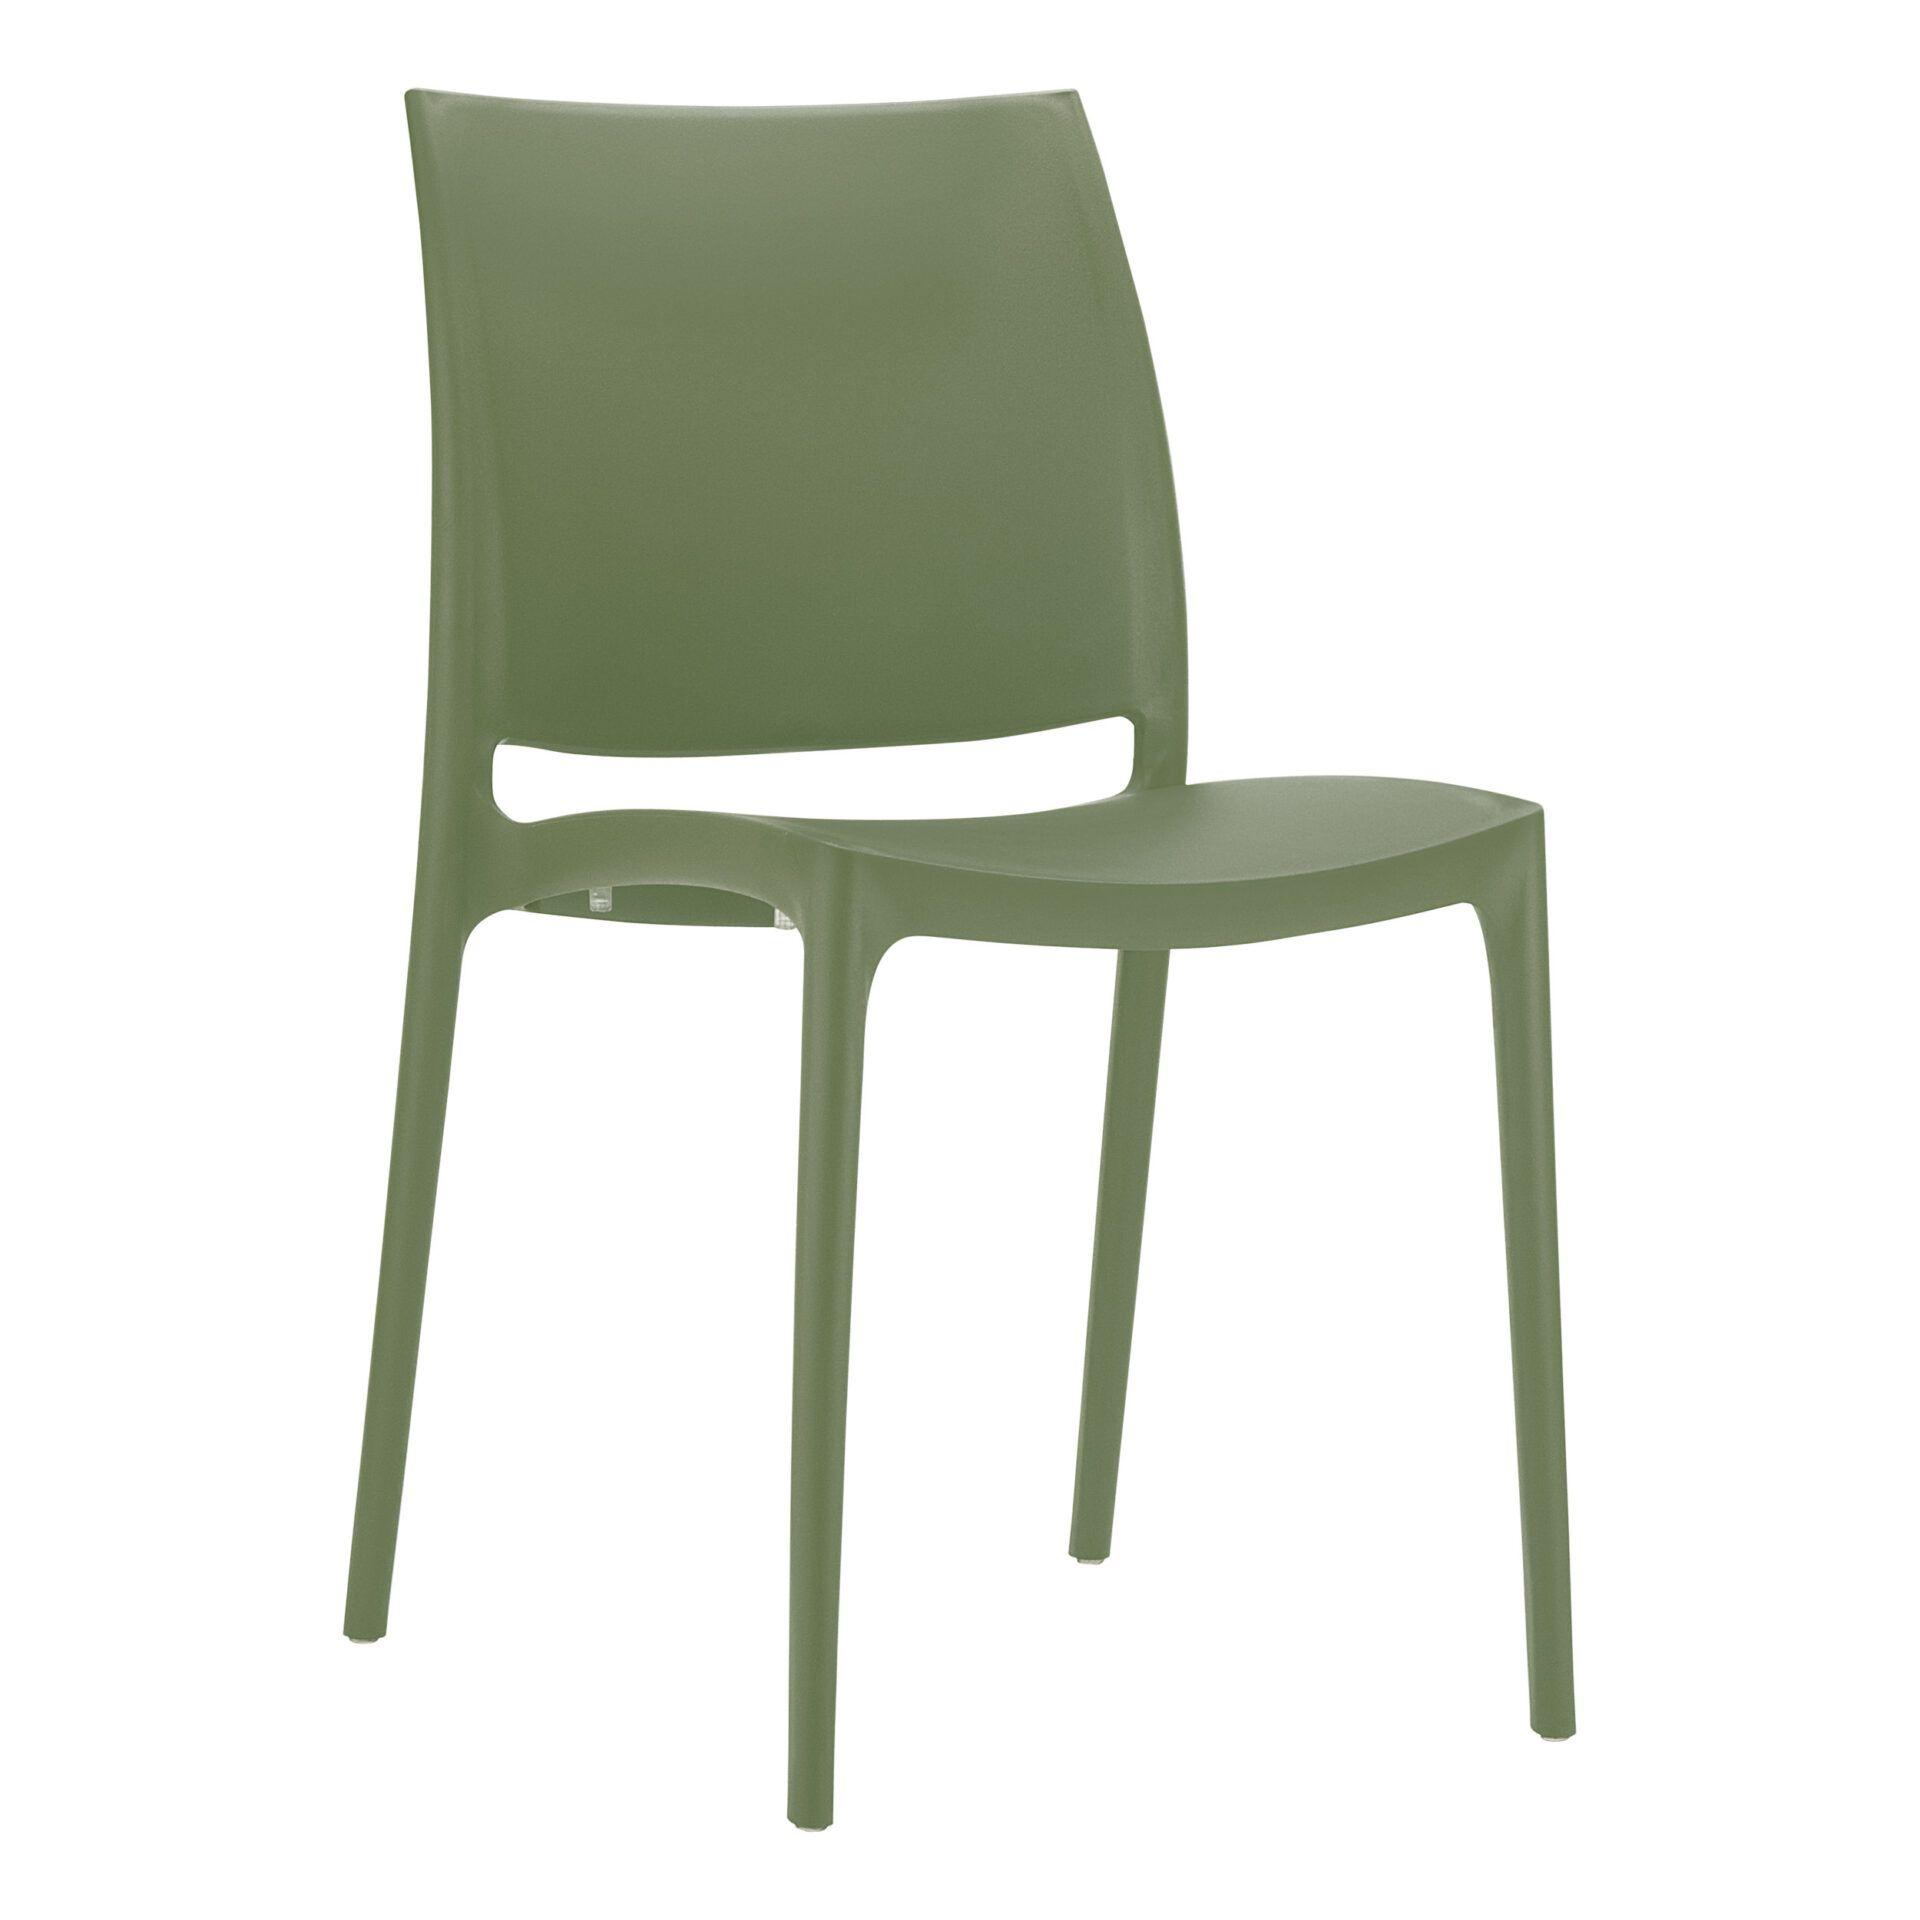 outdoor dining maya chair olive green front side